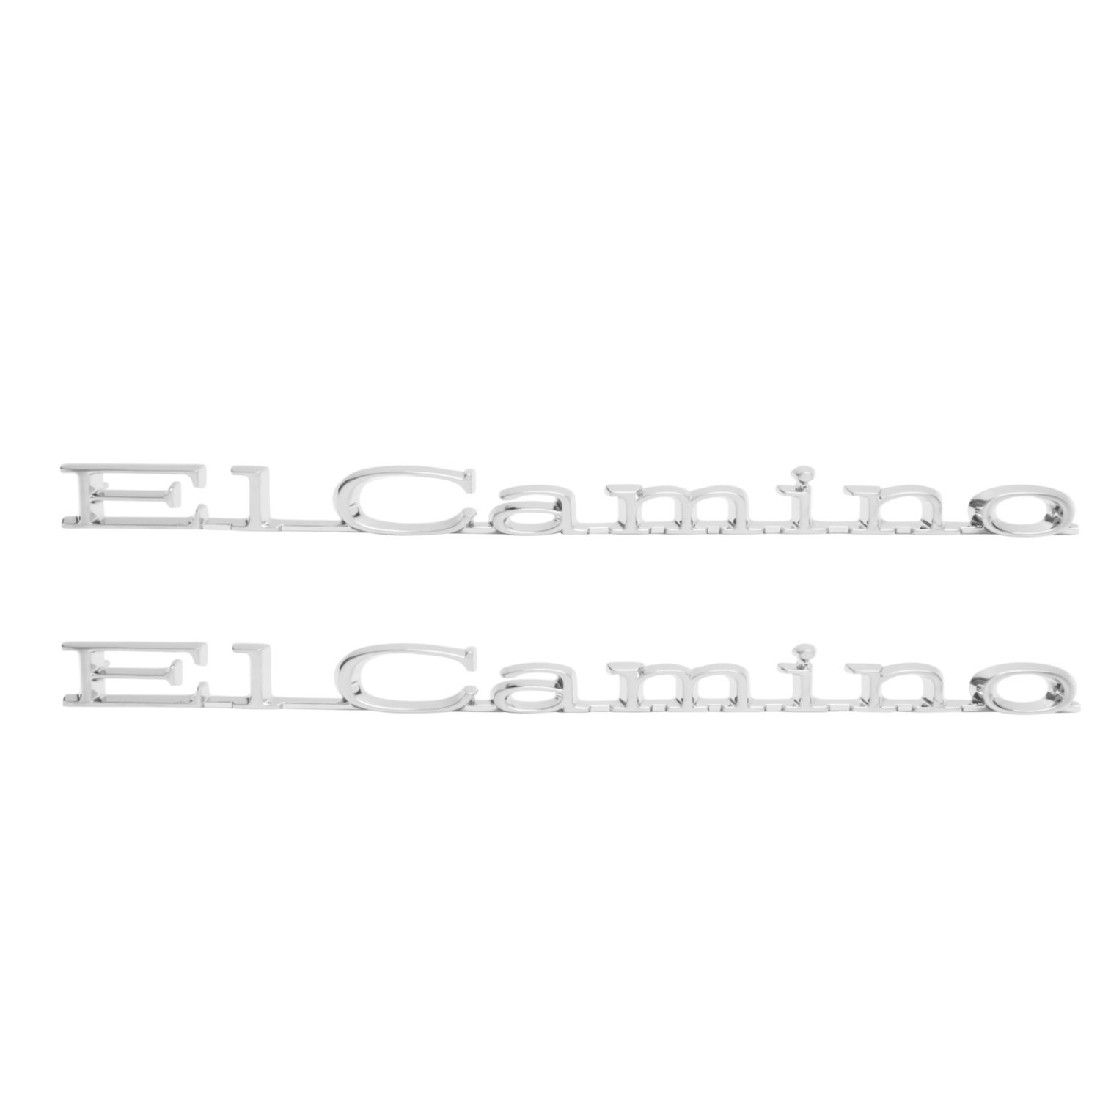 hight resolution of trim parts el camino fender emblems are perfect reproductions of the originals you won t find that anywhere else includes fasteners